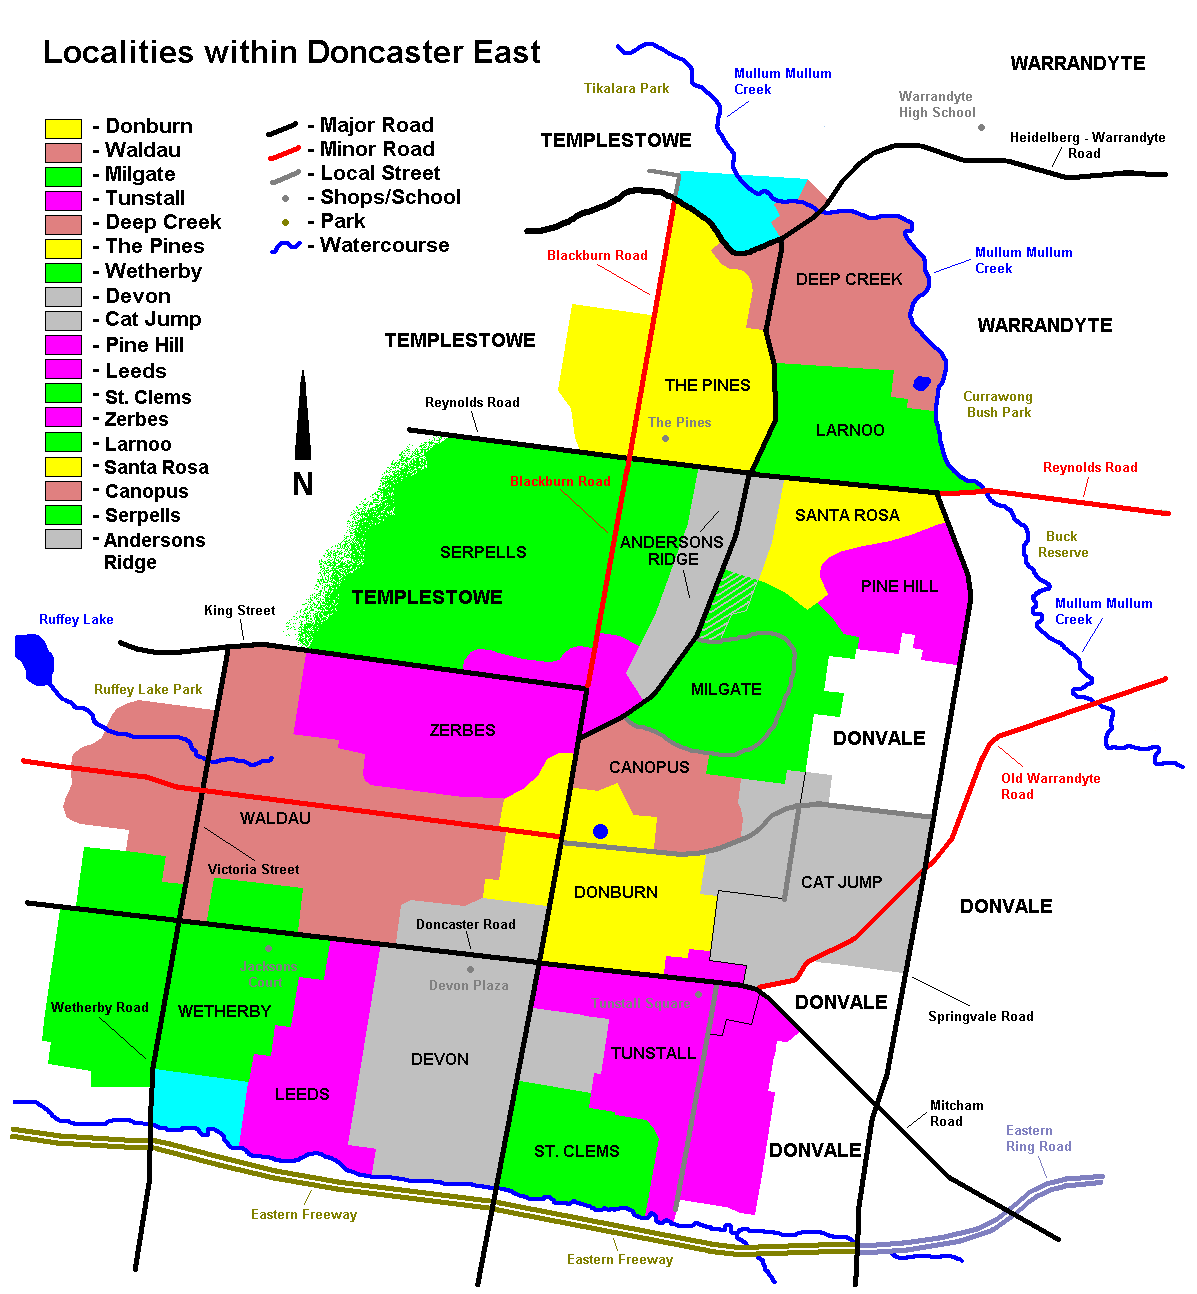 File:Doncaster east locality map.PNG - Wikimedia Commons